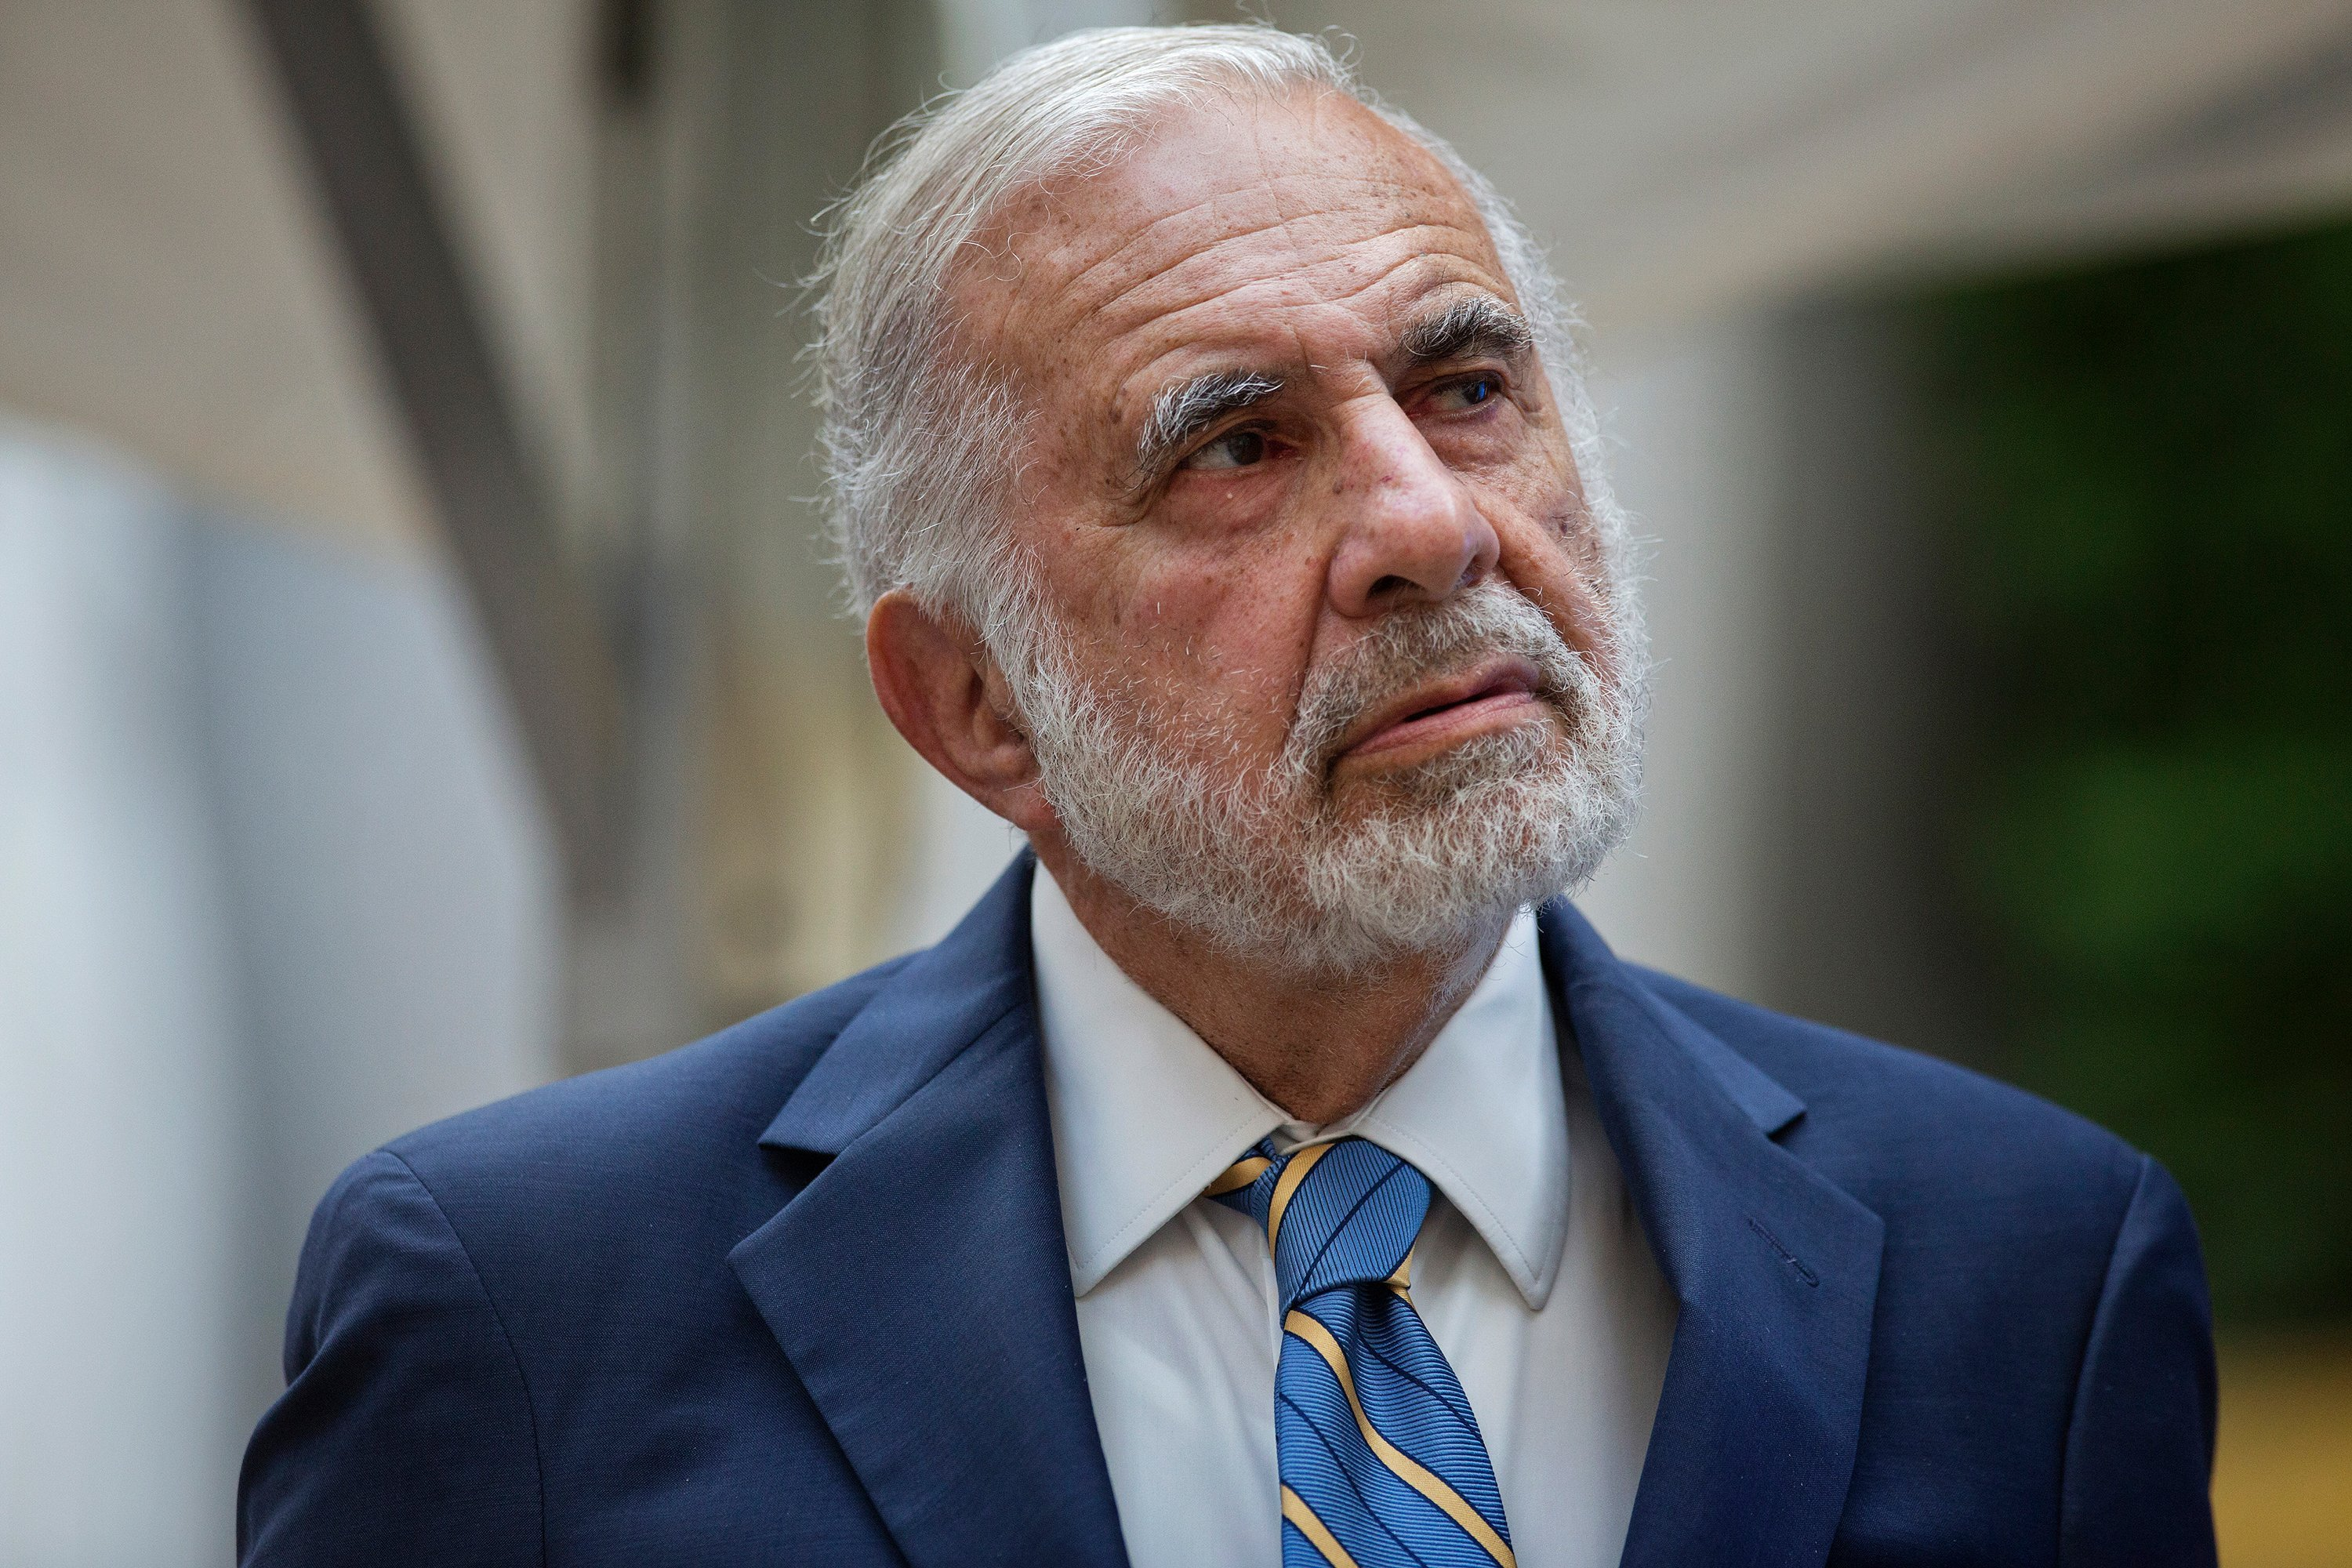 Carl Icahn warns it's 'extremely dangerous' to own shares in Occidental Petroleum, the oil giant he owns a big stake in